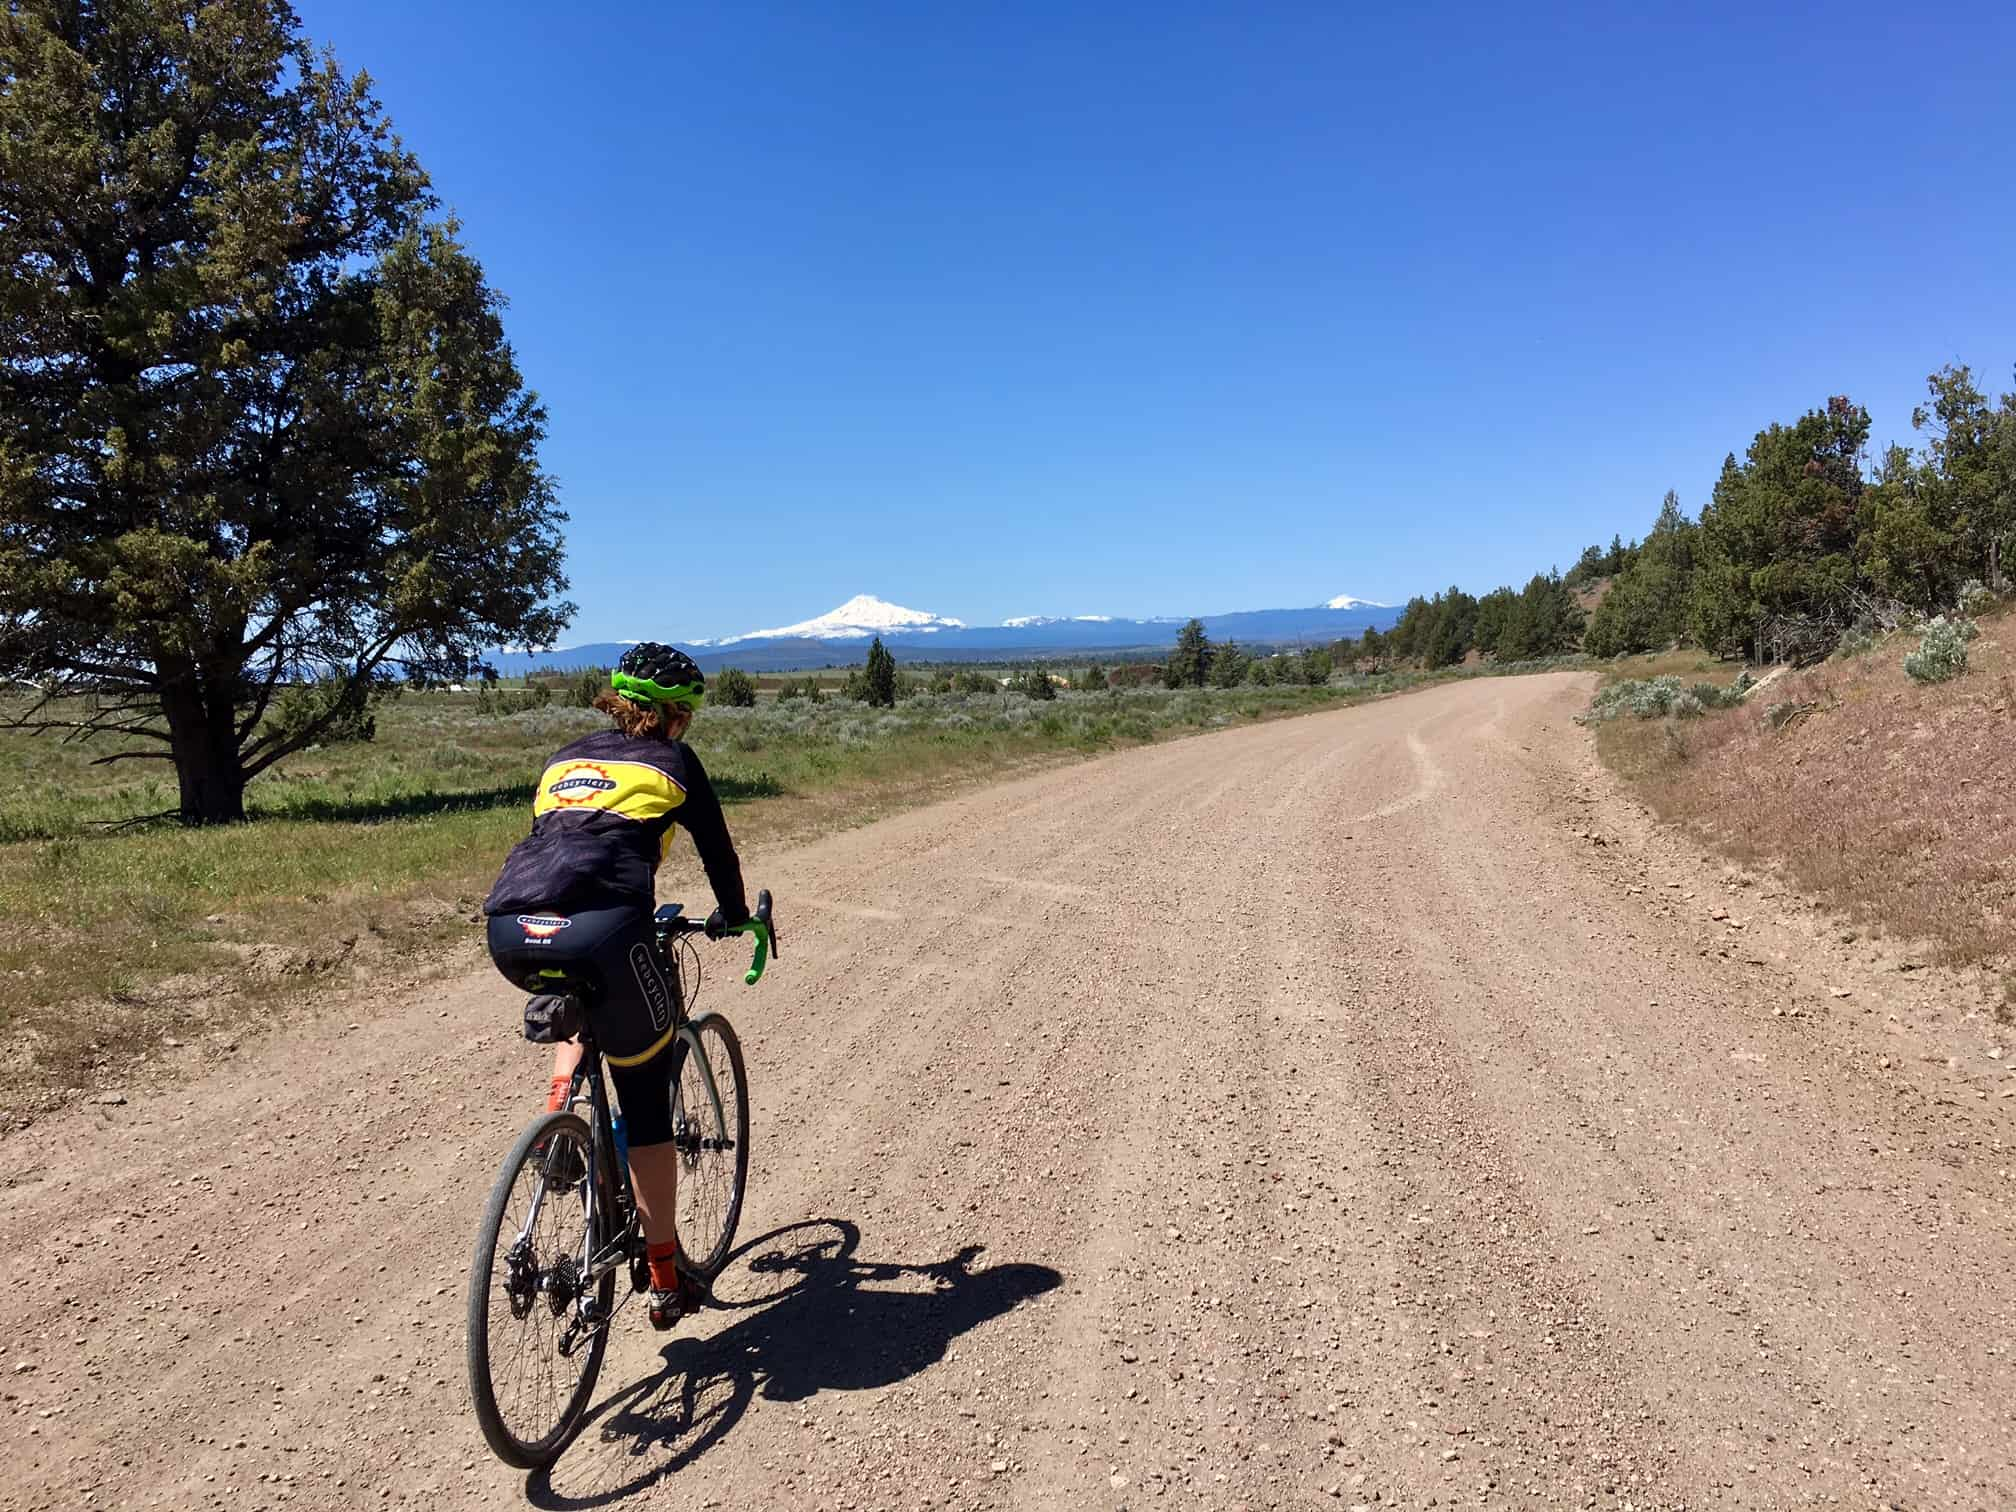 Bike rider on gravel road near Madras, Oregon with mountains in distant background.